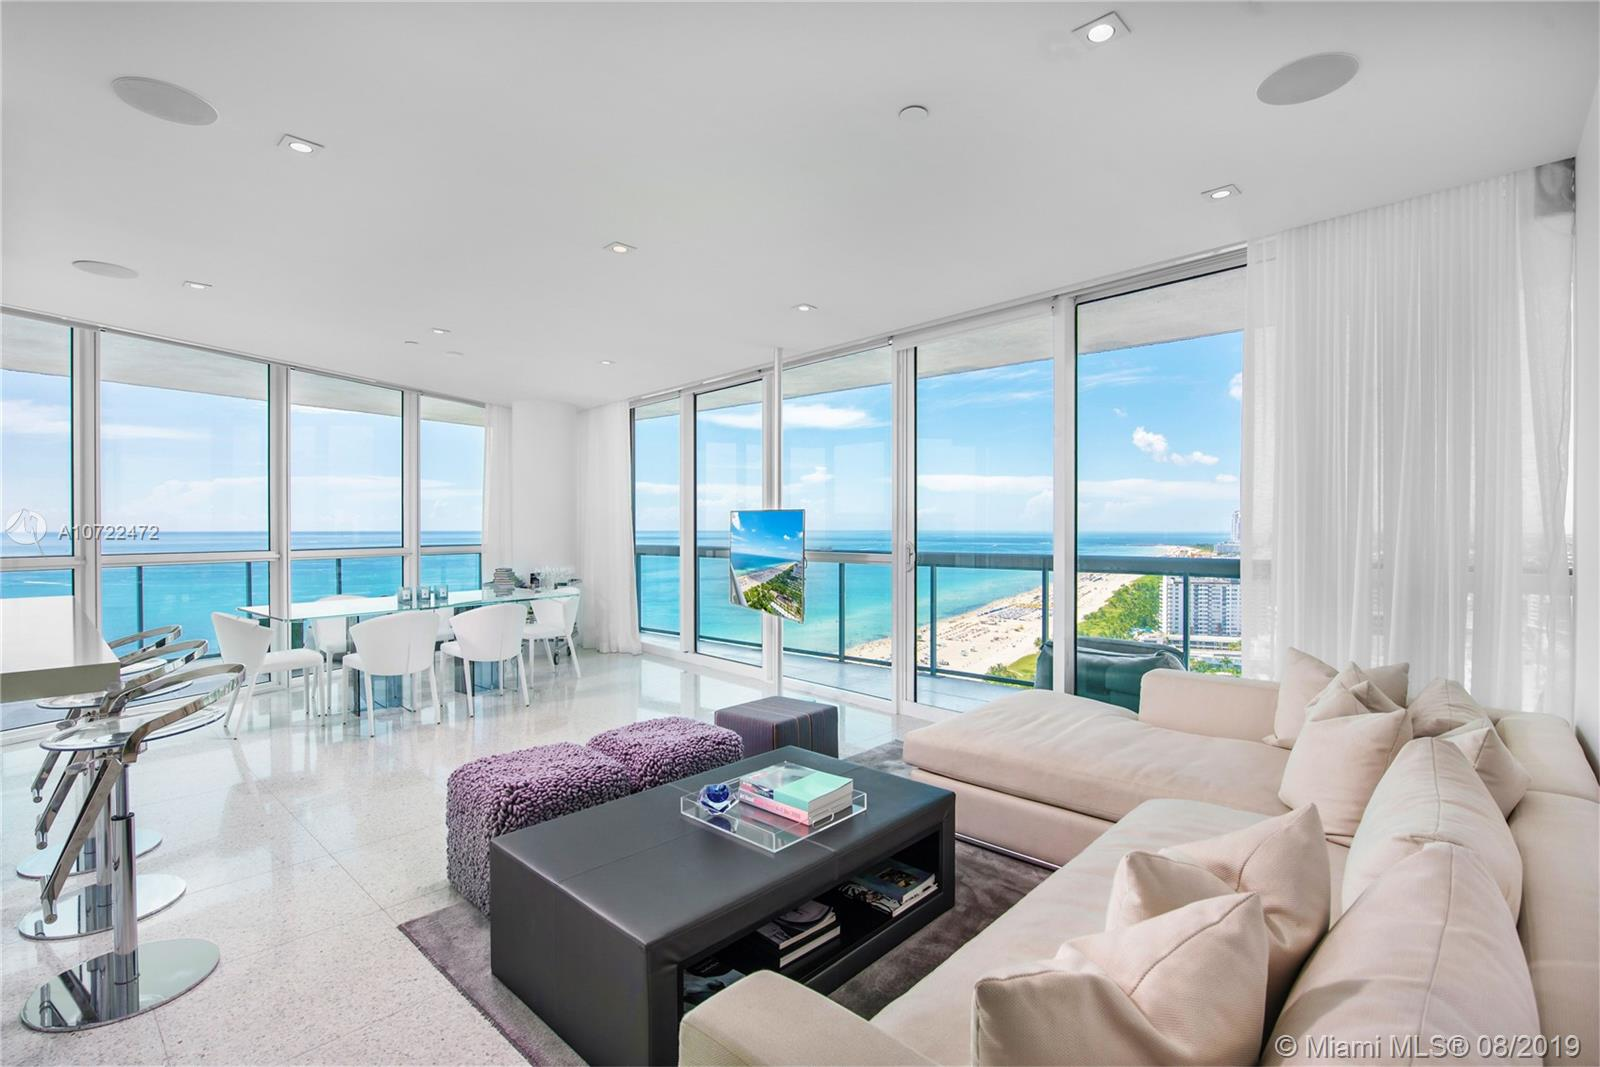 Enjoy living in this beautifully chic and unique designer residence on the South East corner of the 32nd floor of the famous Setai Resort & Residences!  With unobstructed views to the South you will find the panoramic views of South Beach and to the East the direct ocean sunrises and towards the West the Downtown Miami sunsets!  This sleek apartment has been reconfigured to maximize the floorspace and the views from every room. The Setai provides it's guests and residences with 5 star services and high end amenities; featuring  onsite restaurants, world class spa services, 24 hour room service and complete food and beverage service at both the beach and the pool.  Very easy to show and easy to rent short term or long term.